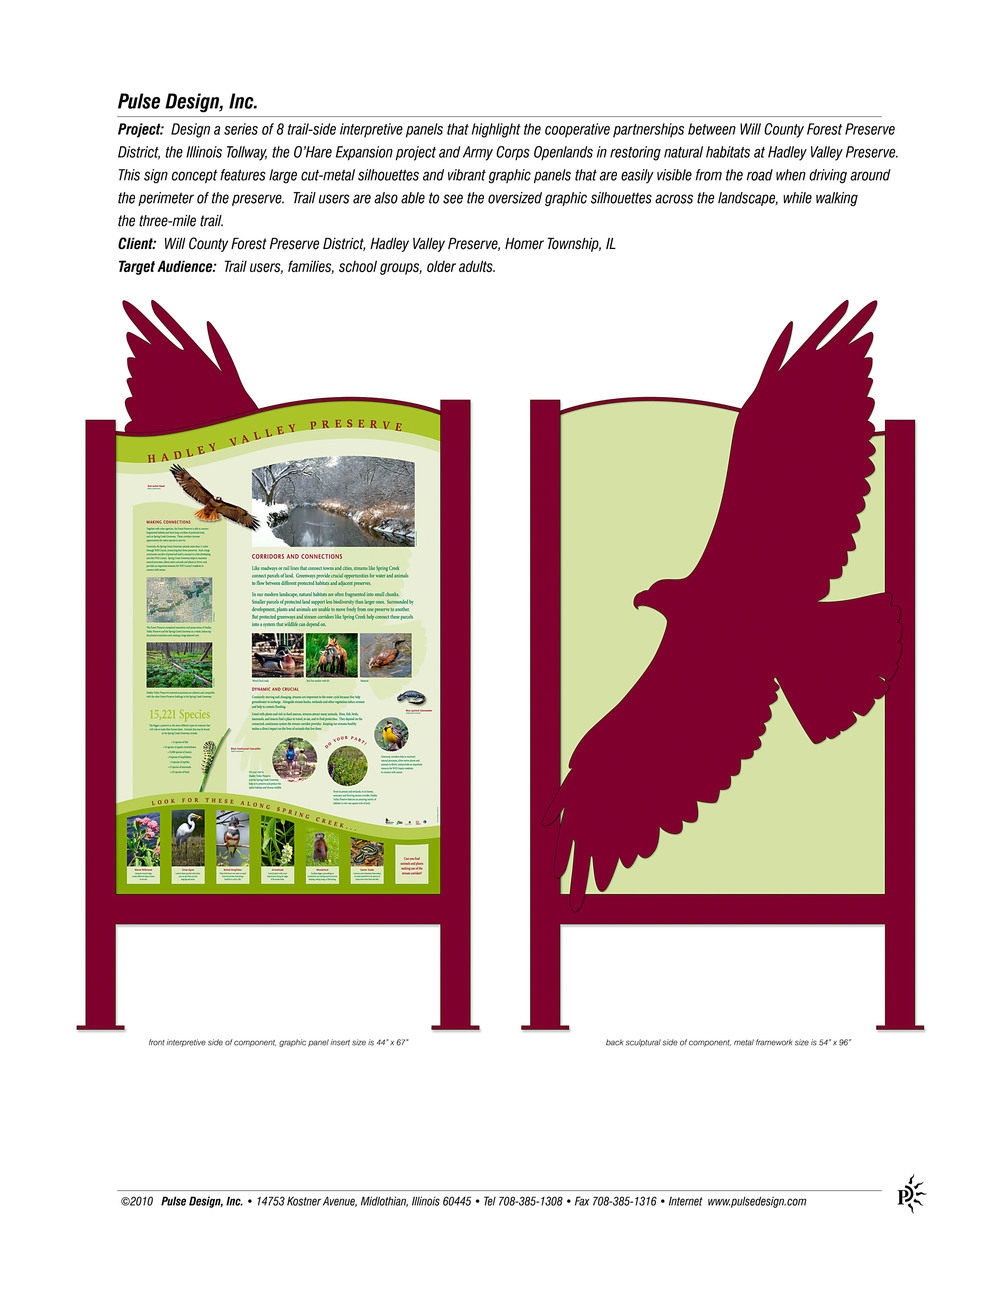 Hadley-Valley-Trail-Sign-Hawk-Lg-Pulse-Design-Inc.jpg